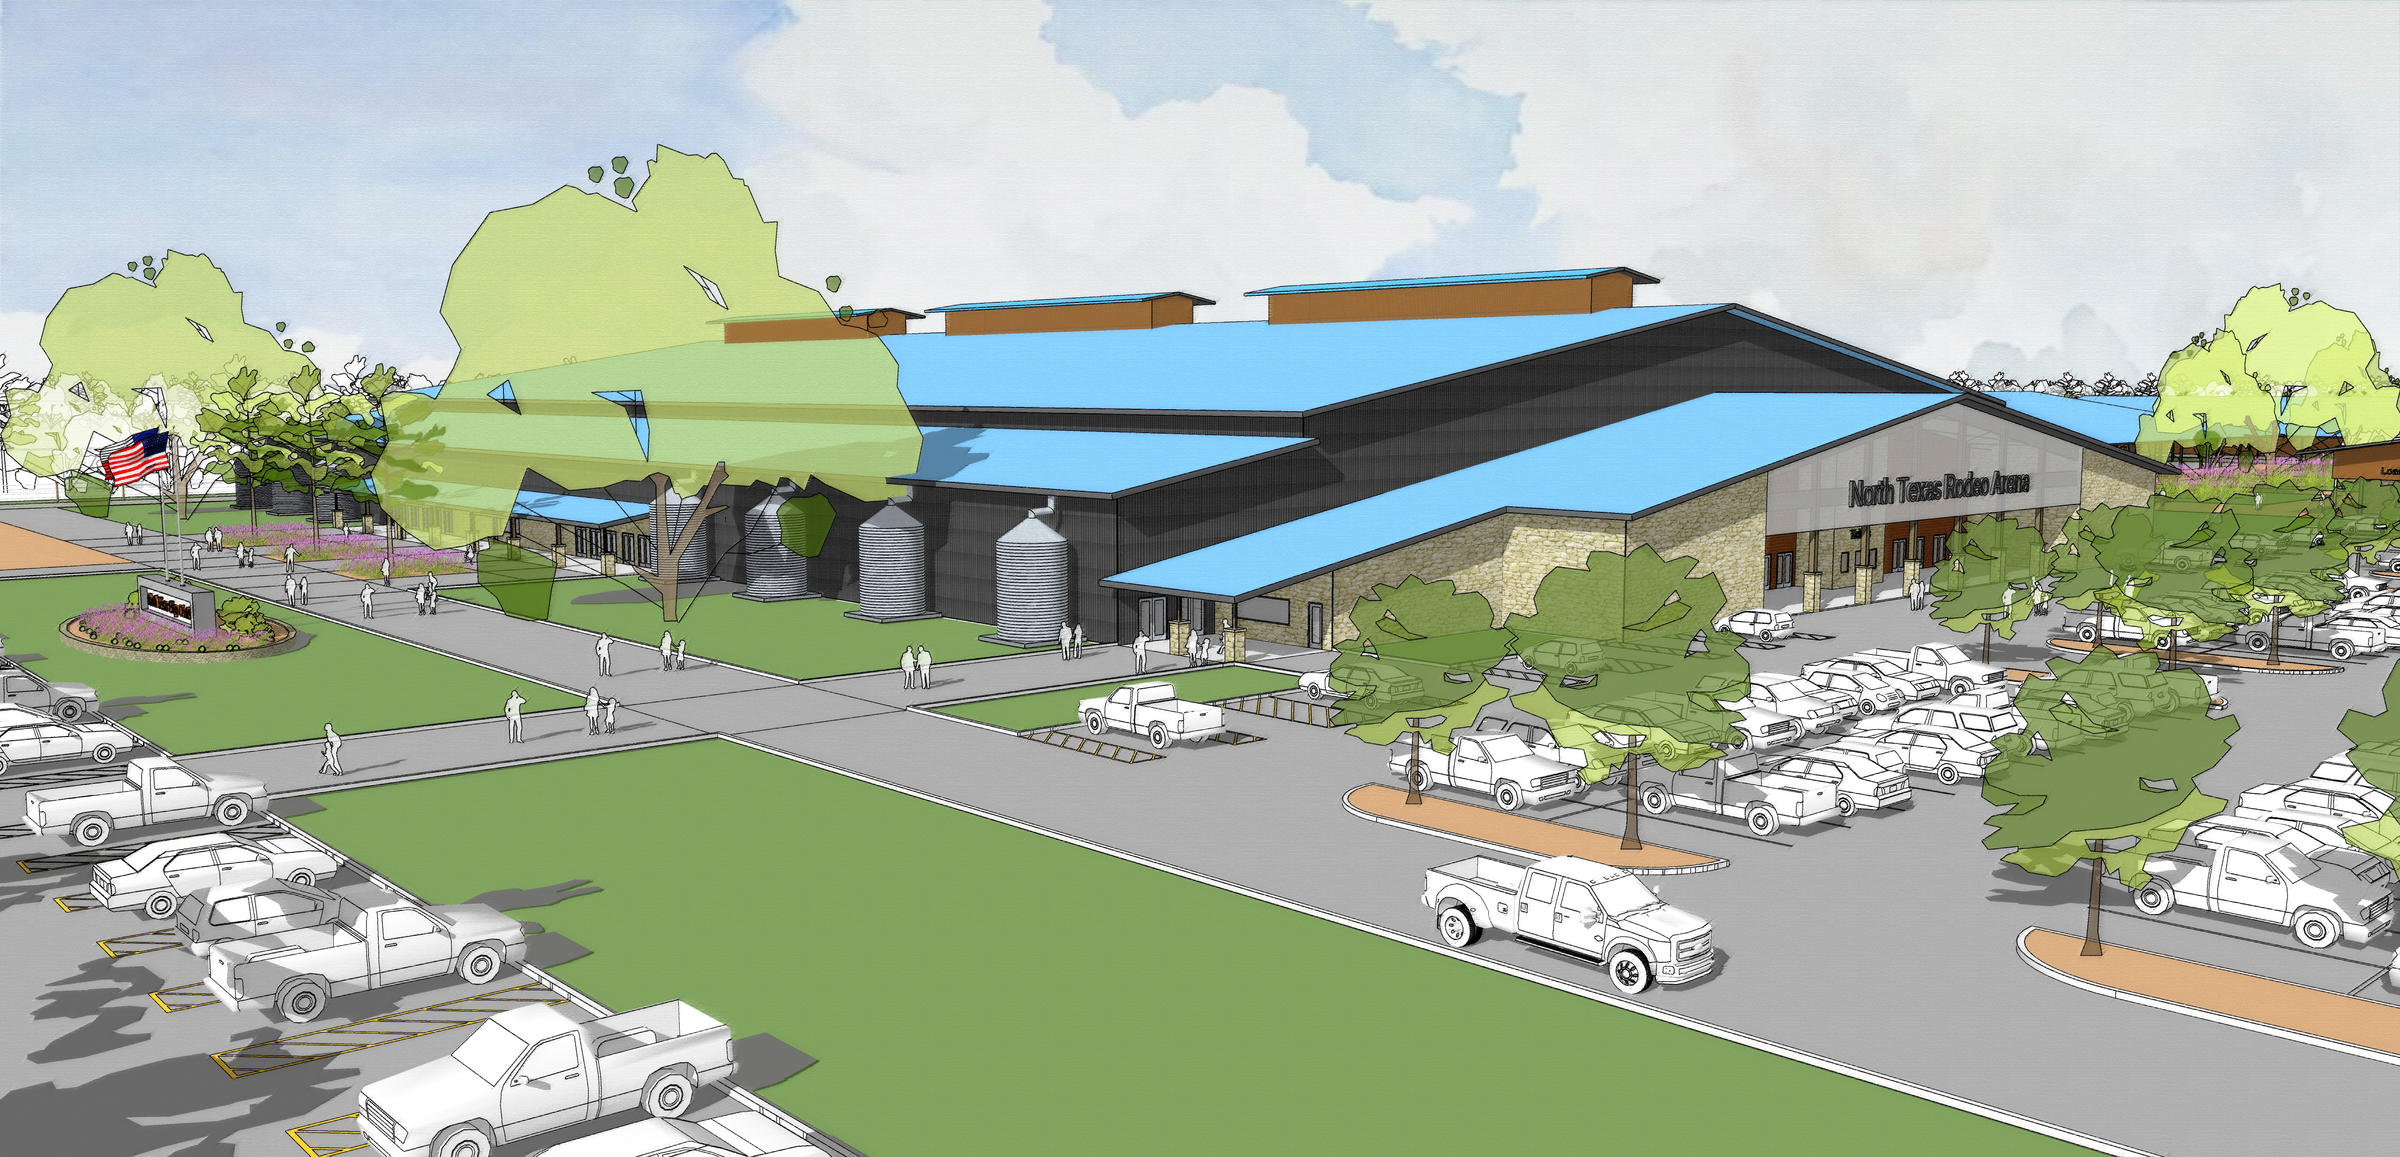 A Rendering Of The Competition Arena Building Thatu0027s Part Of The Planned  North Texas Expo Center In Denton, Texas.